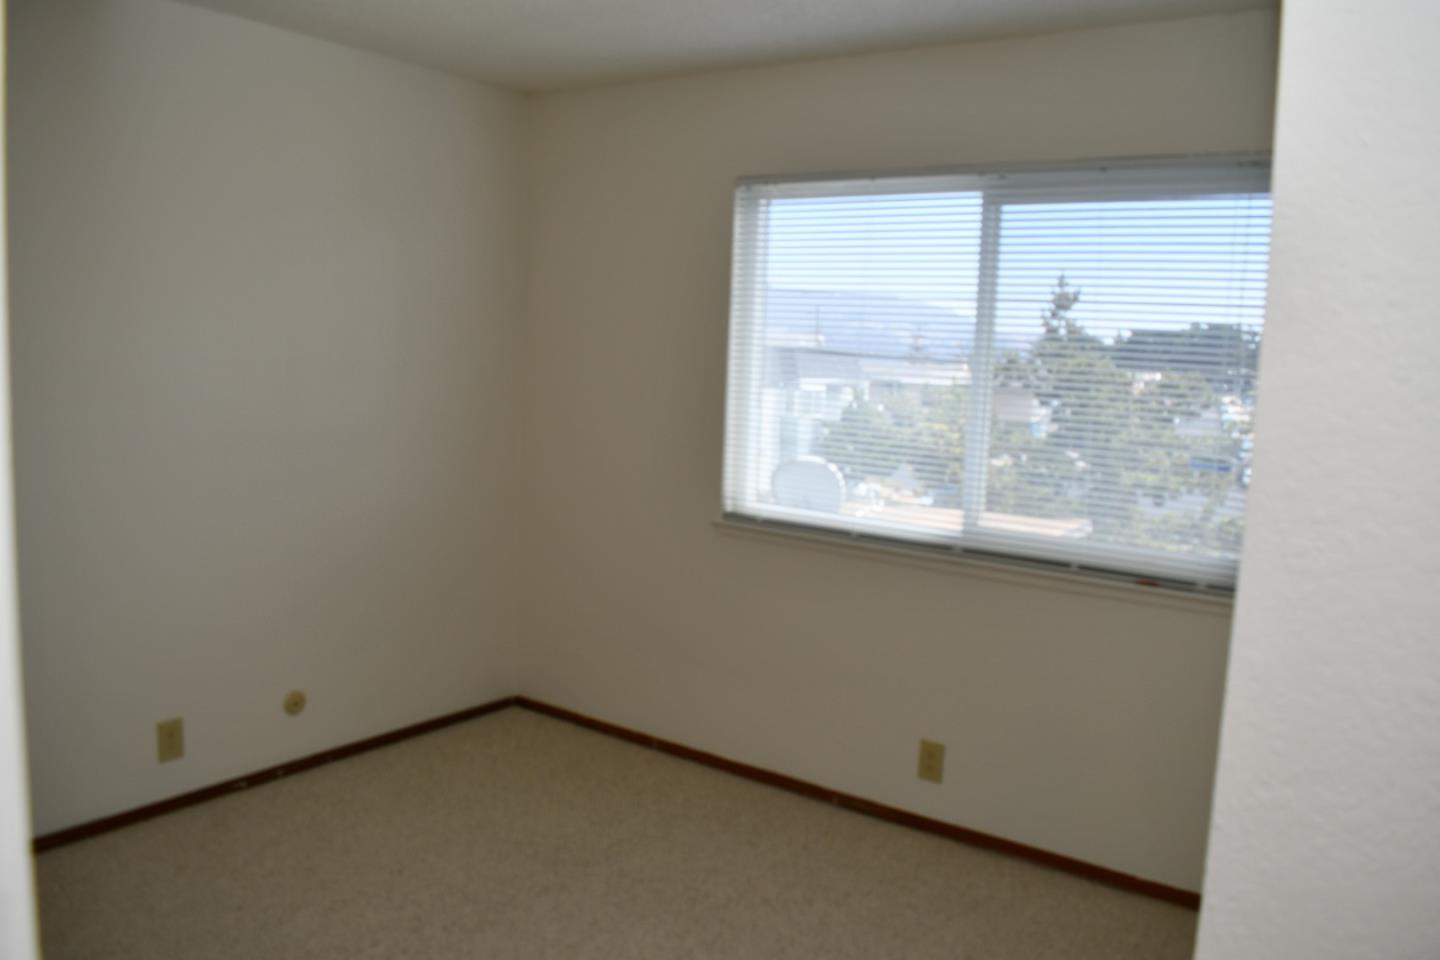 101 Del Prado Drive Daly City, CA 94015 - MLS #: ML81722332